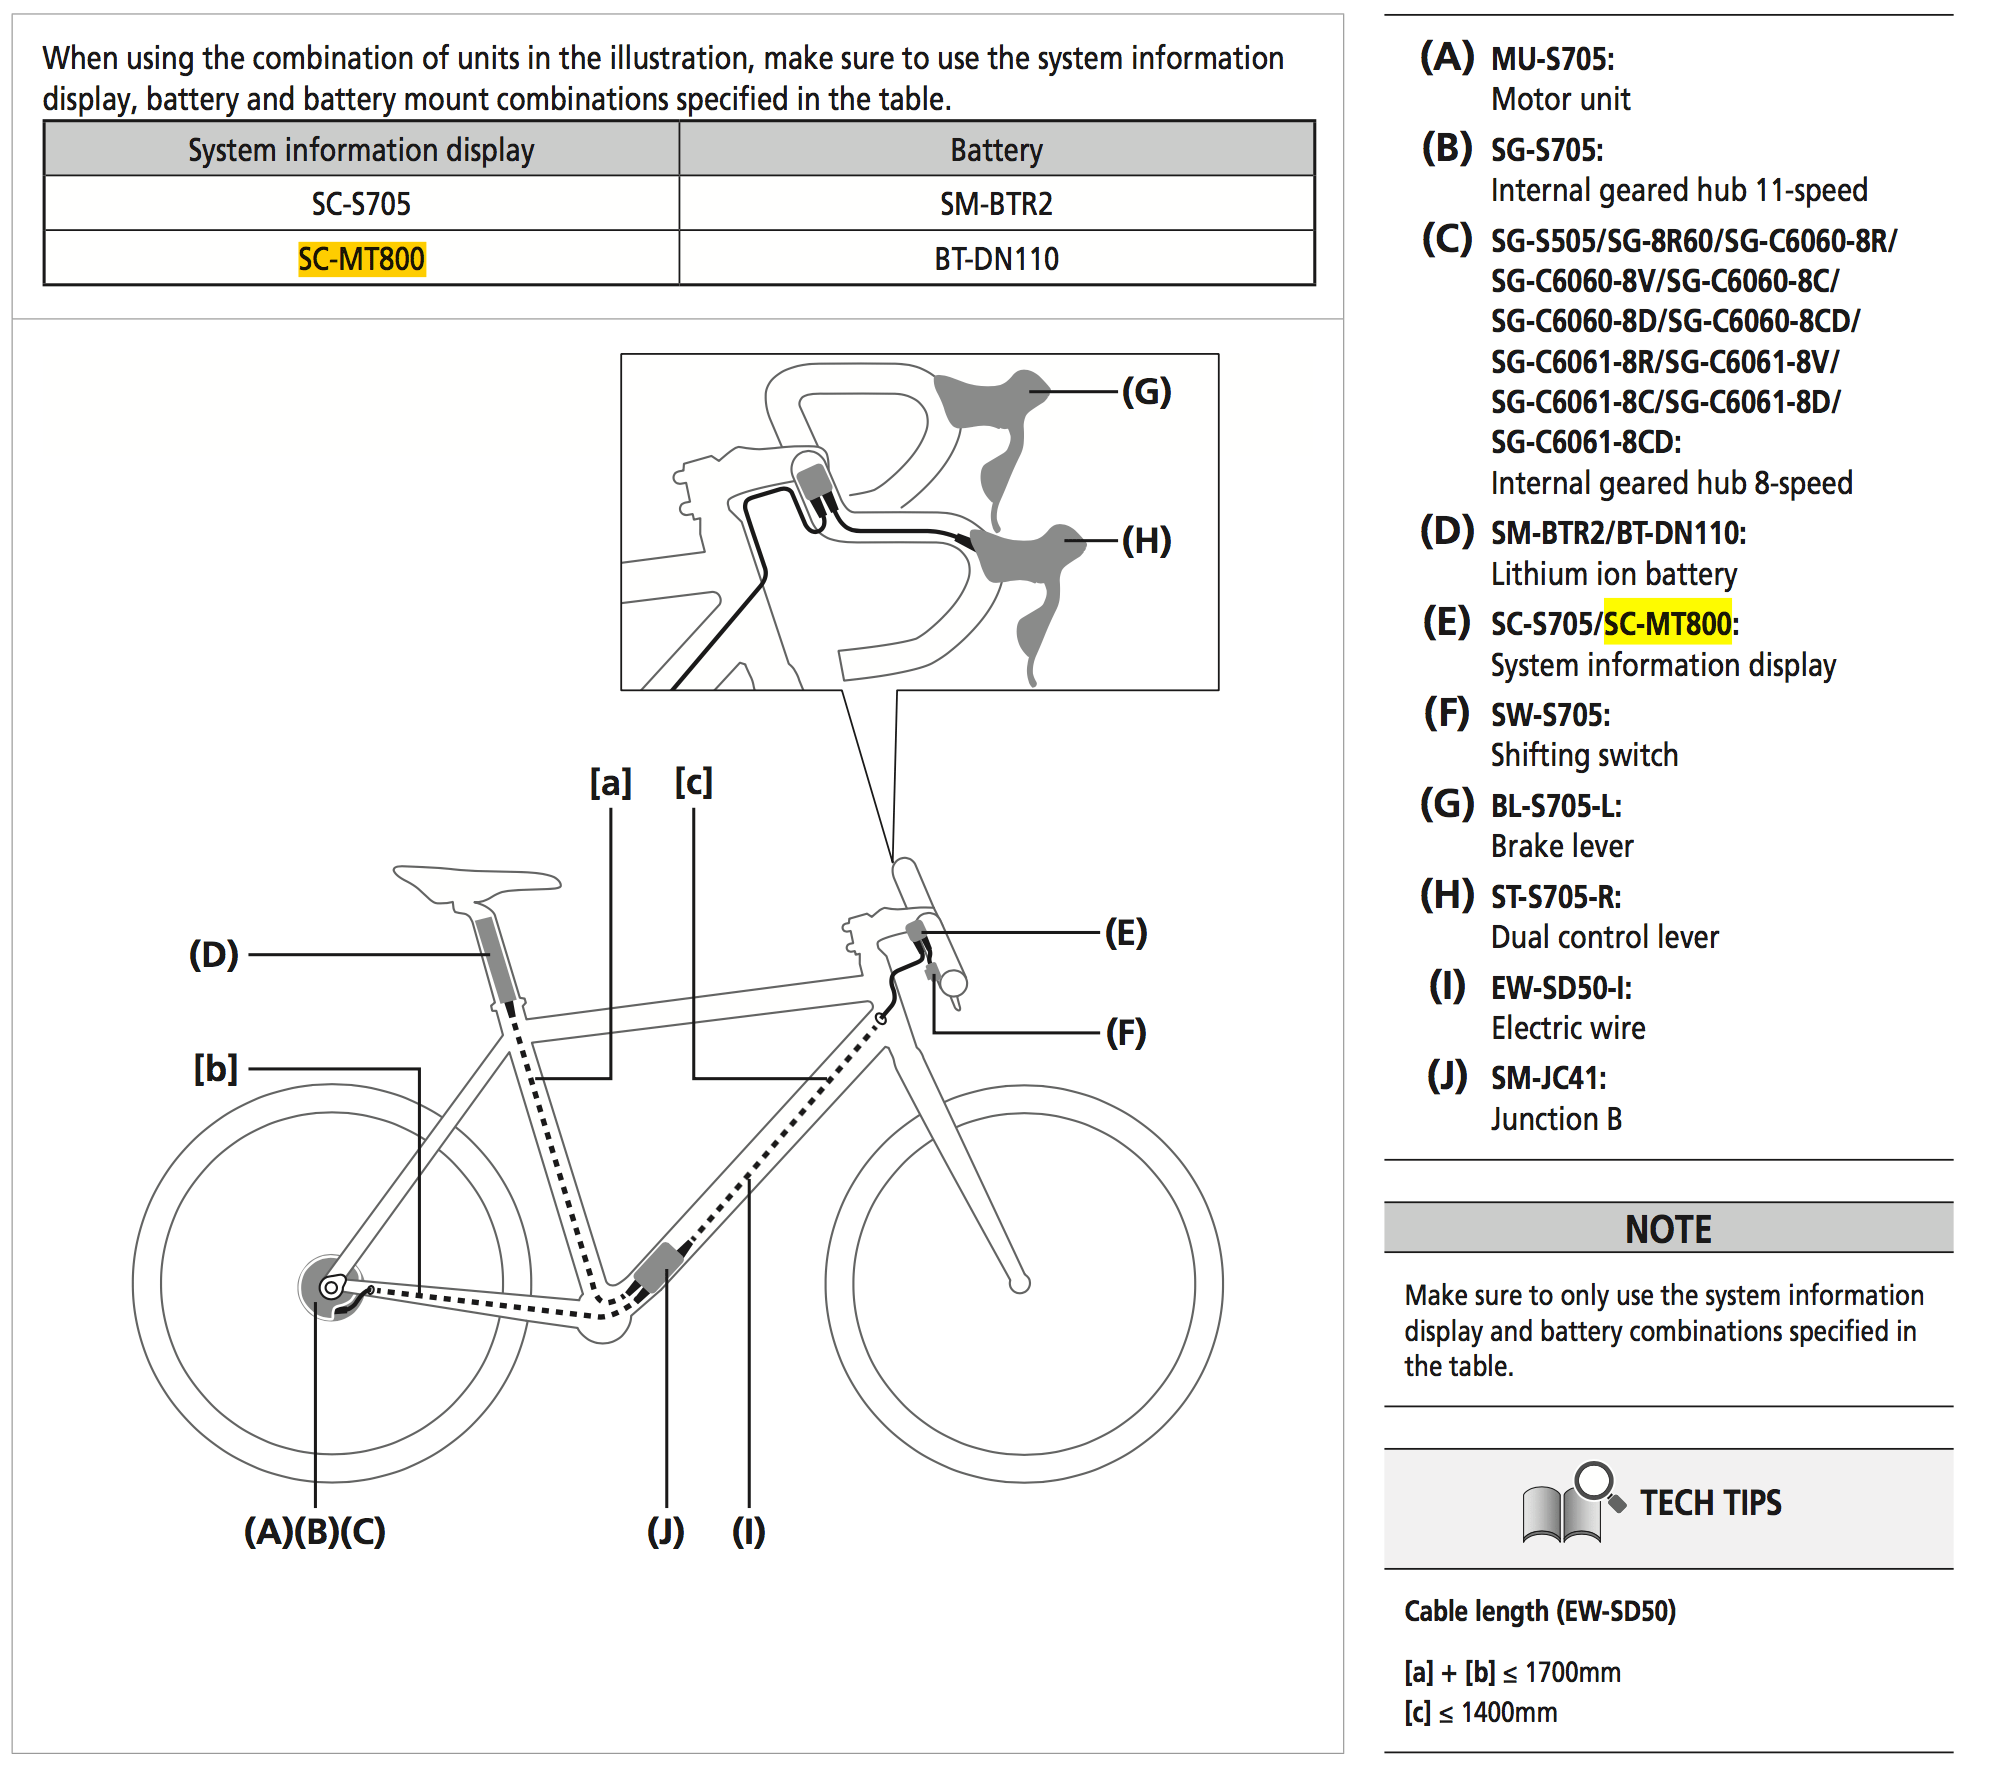 ultegra di2 6870 wiring diagram wire center u2022 rh 45 76 62 56 Shimano Di2 Wiring-Diagram 9150 Shimano Di2 Wiring-Diagram